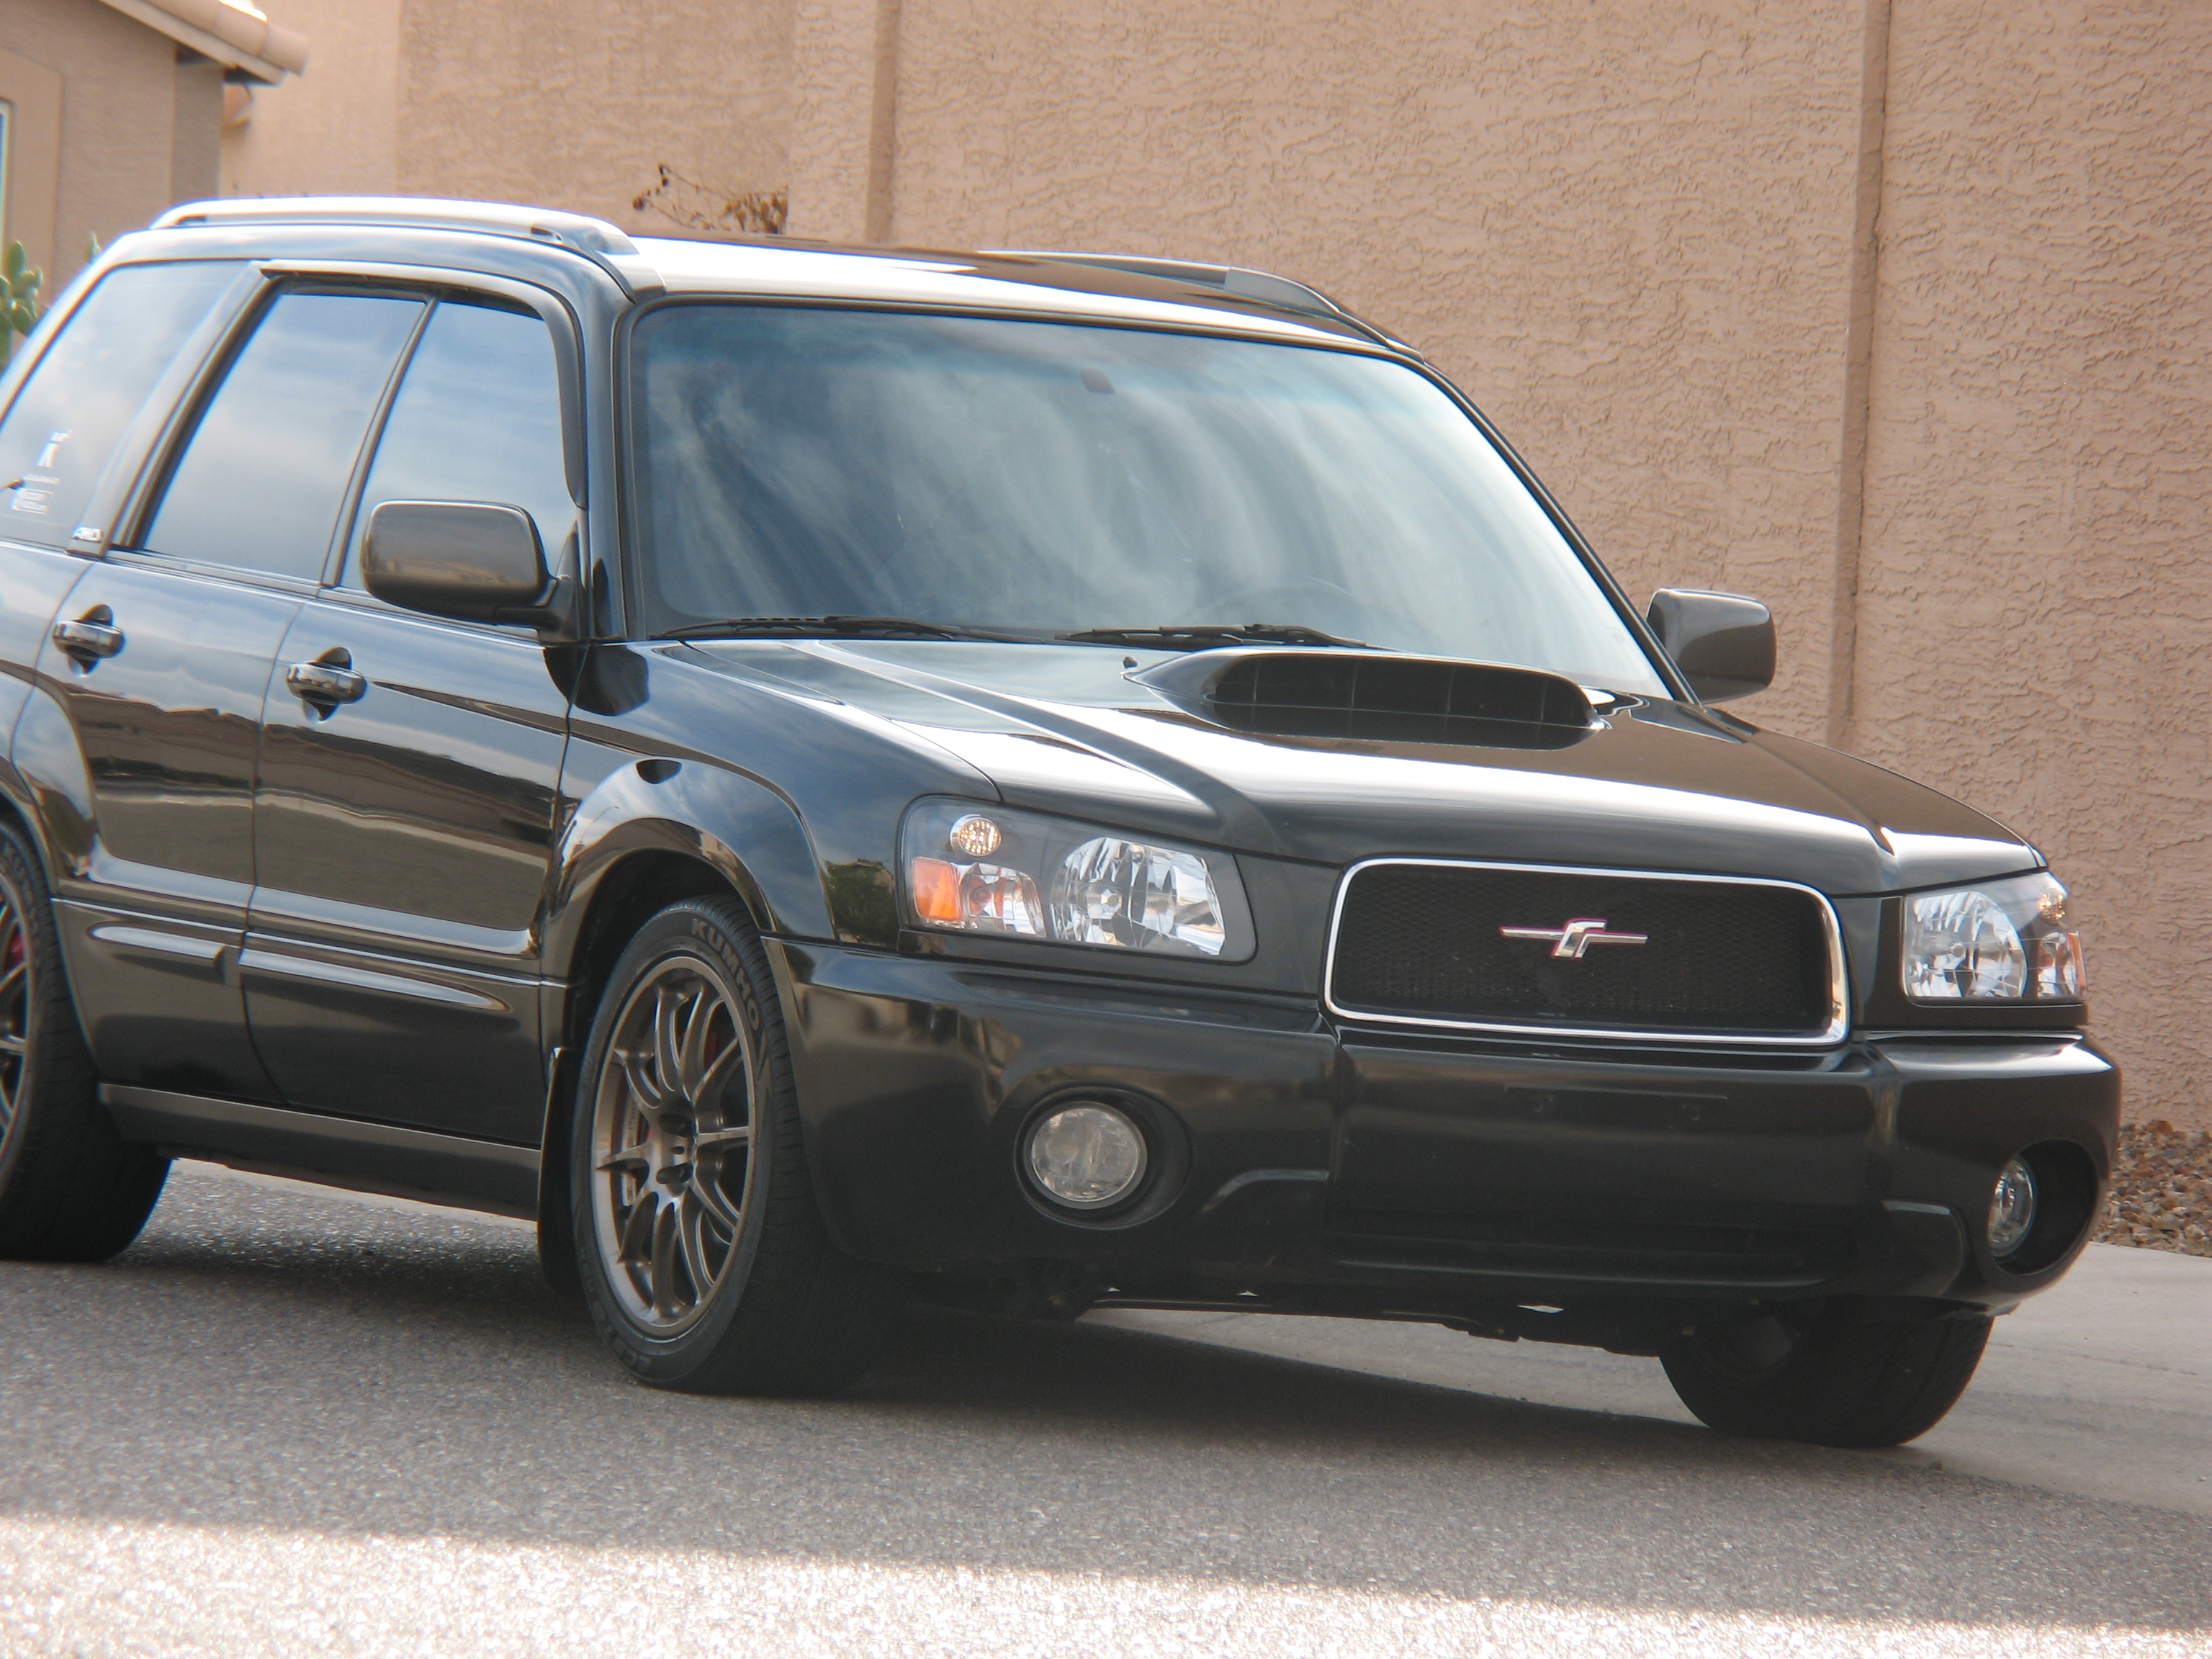 2004 subaru forester information and photos zombiedrive 2004 subaru forester 2 subaru forester 2 vanachro Choice Image